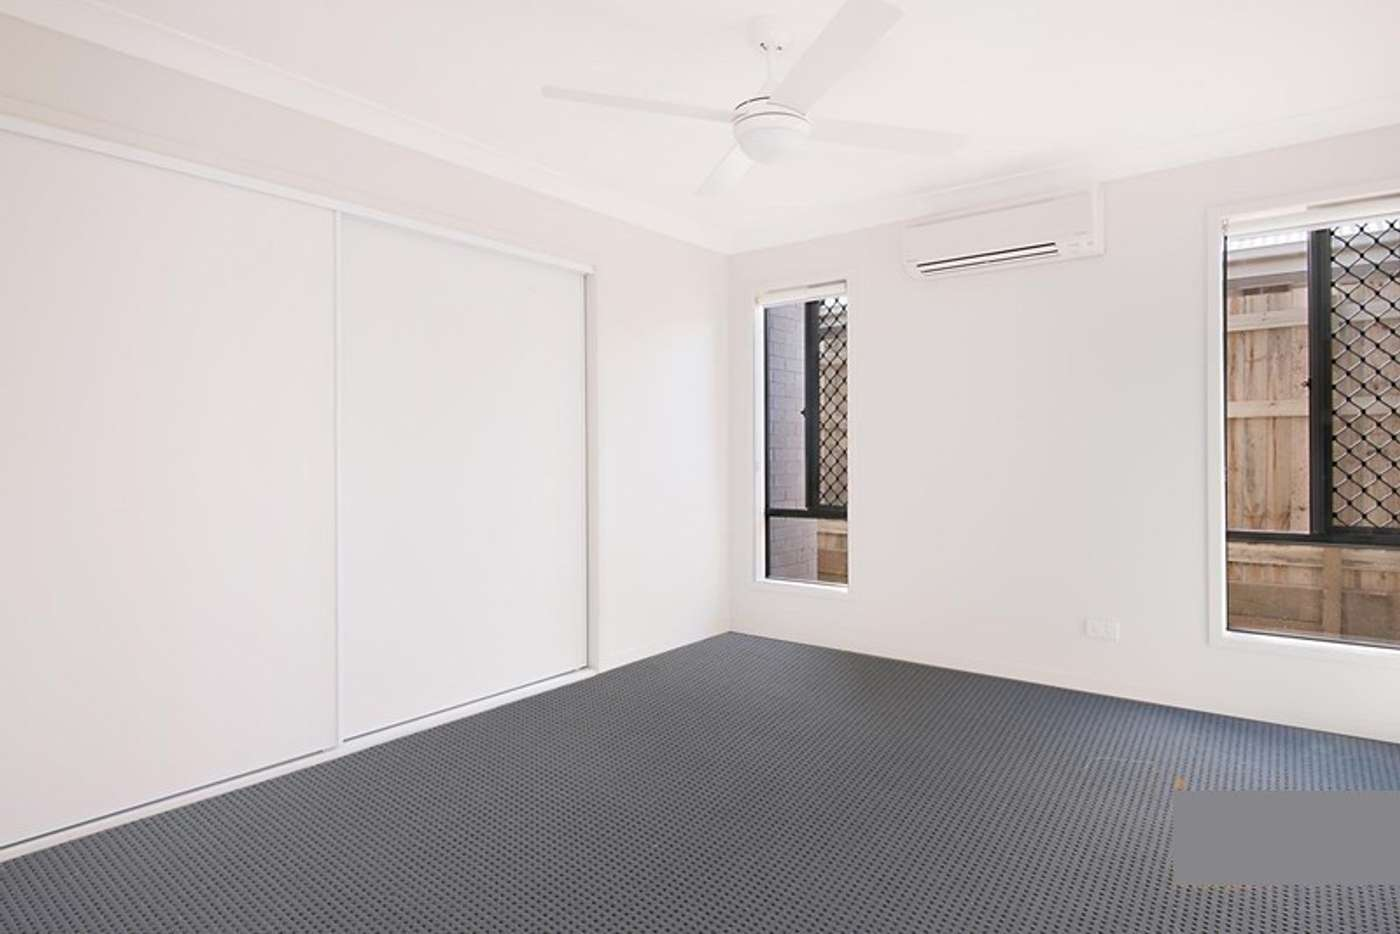 Sixth view of Homely house listing, 84 Bambil Street, Marsden QLD 4132